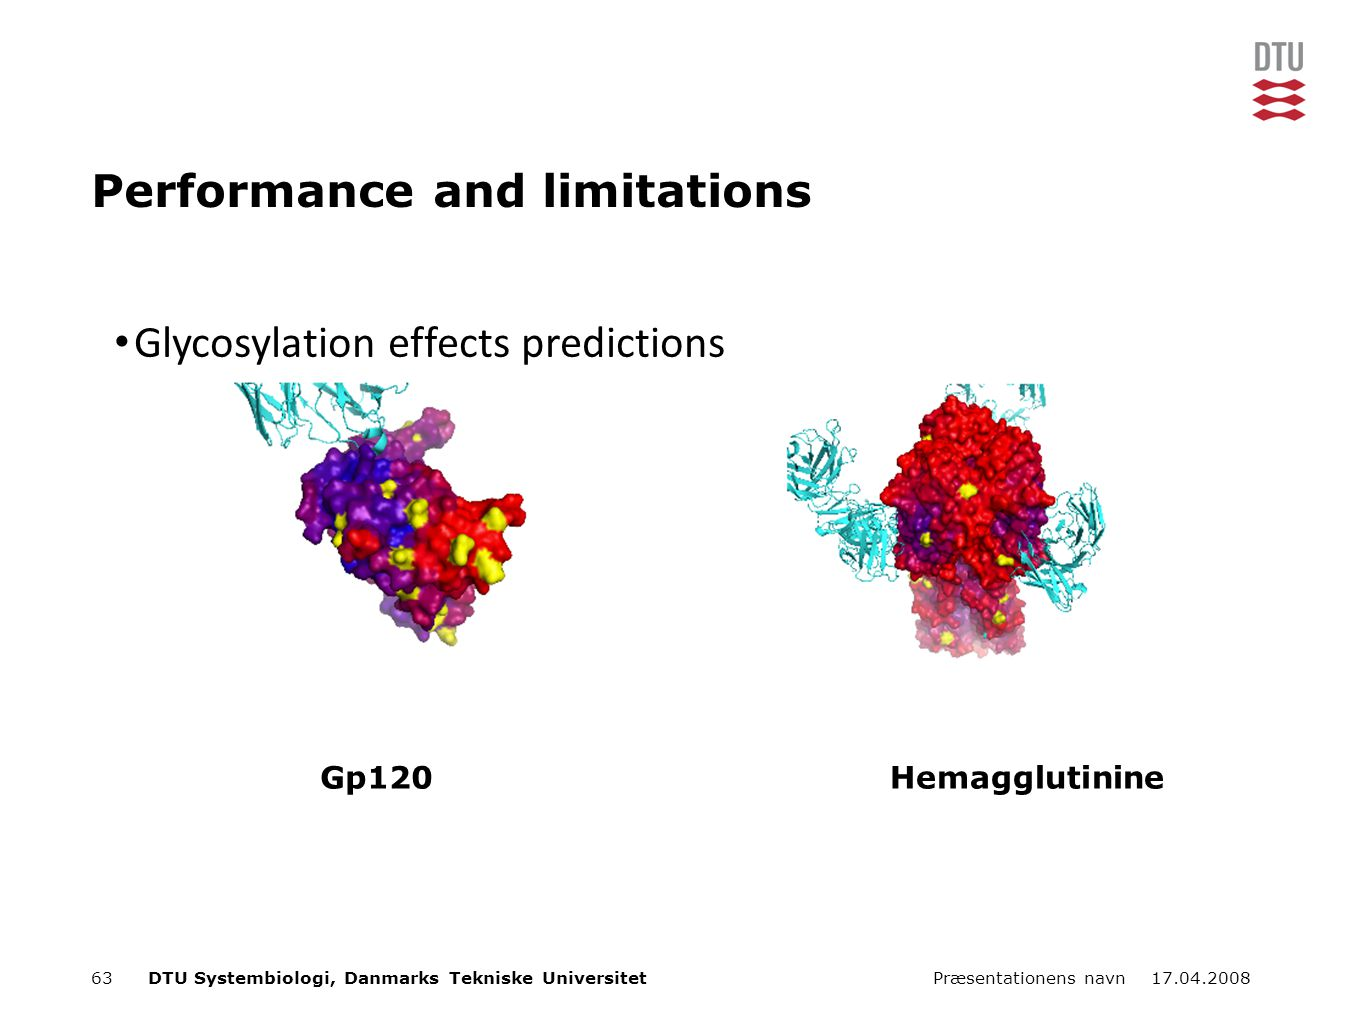 17.04.2008Præsentationens navn63DTU Systembiologi, Danmarks Tekniske Universitet Performance and limitations Gp120Hemagglutinine Glycosylation effects predictions